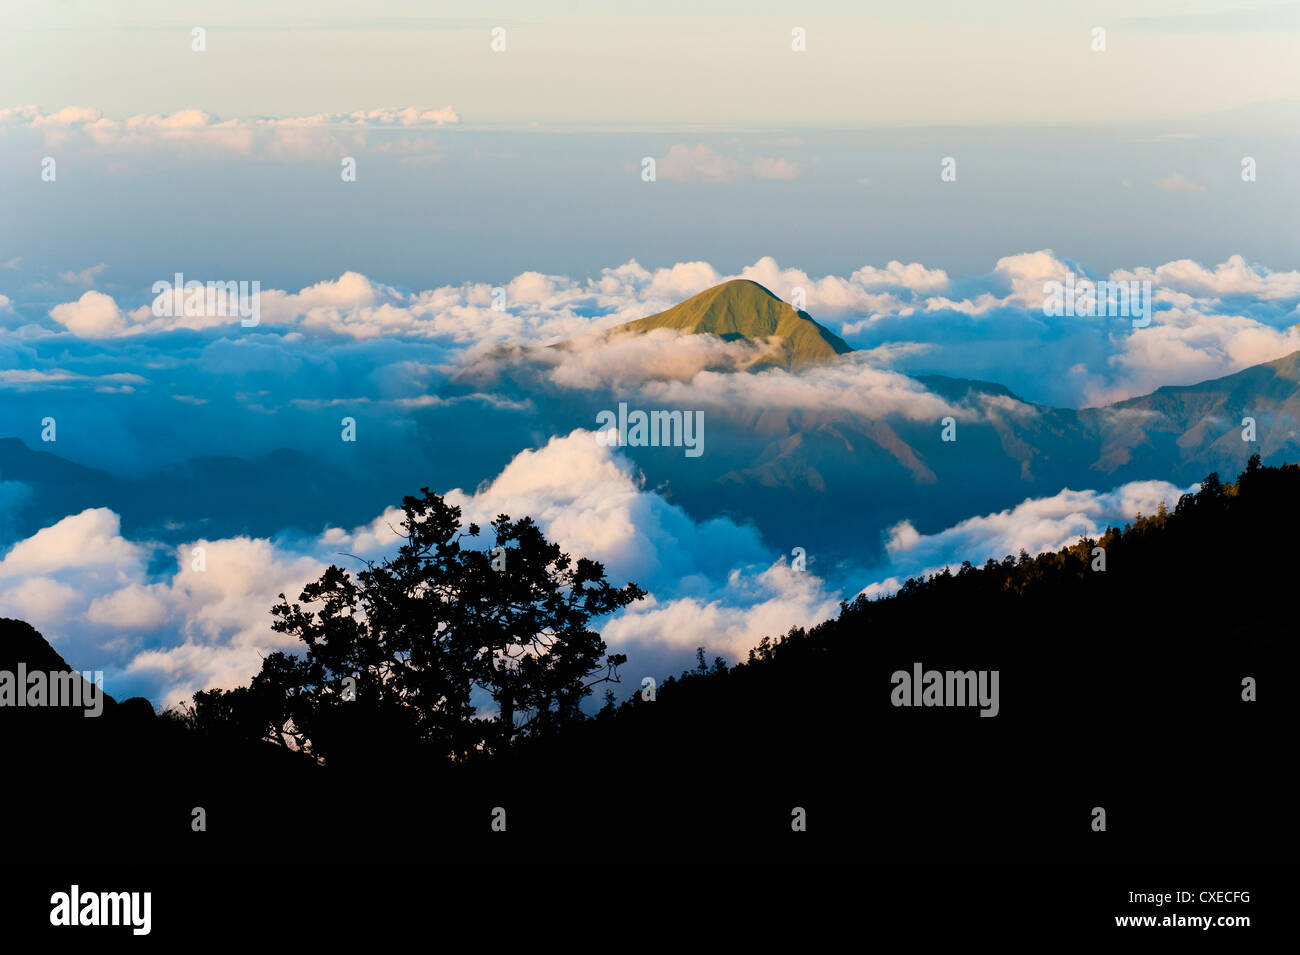 Mountain peaks rising high above the clouds taken from Mount Rinjani volcano, Lombok, Indonesia, Southeast Asia, - Stock Image